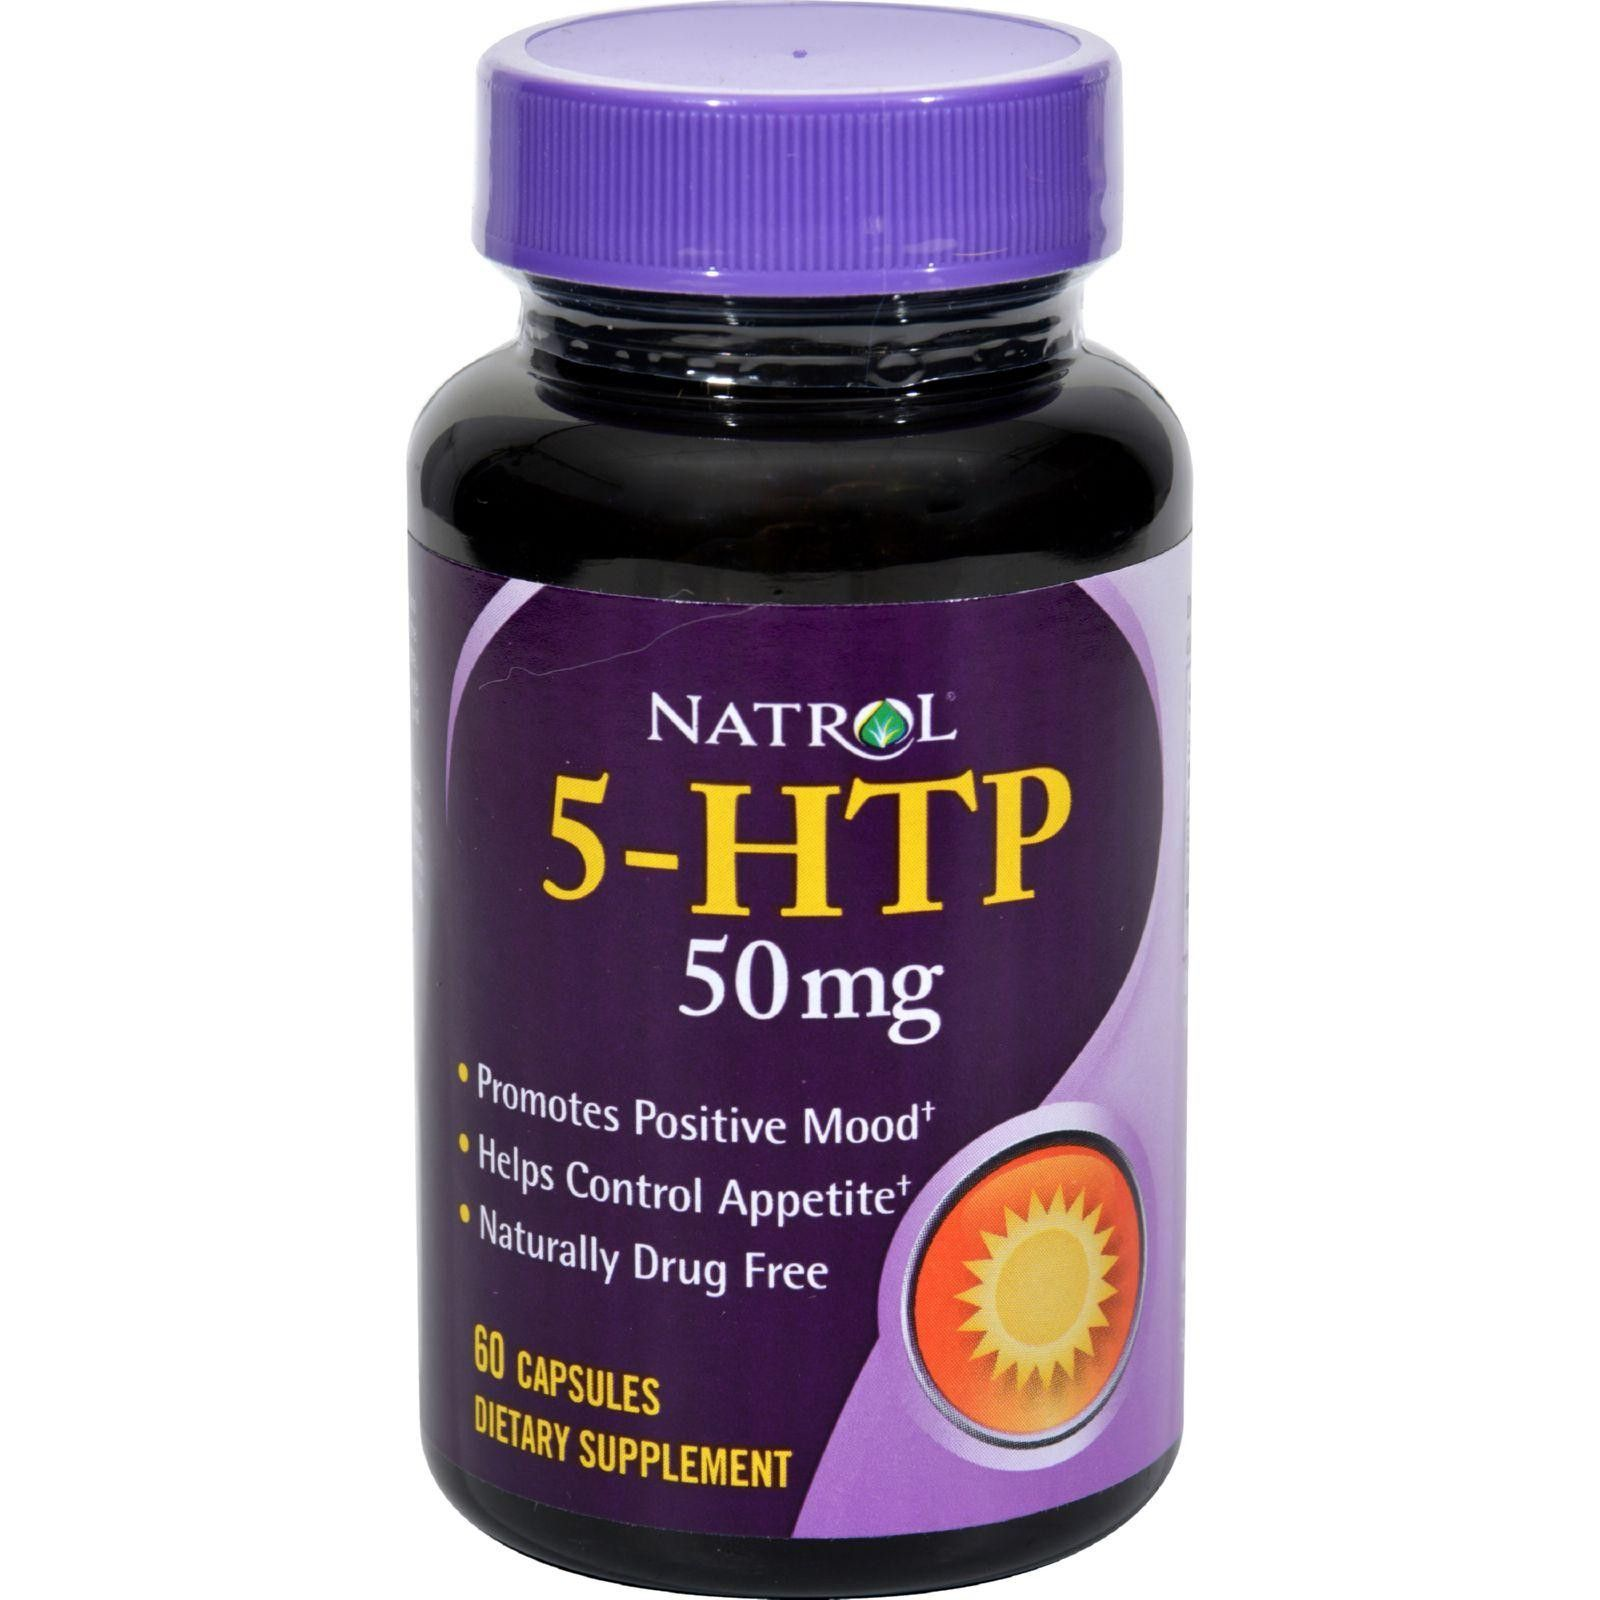 Natrol 5htp 50 Mg 60 Capsules Products Pinterest